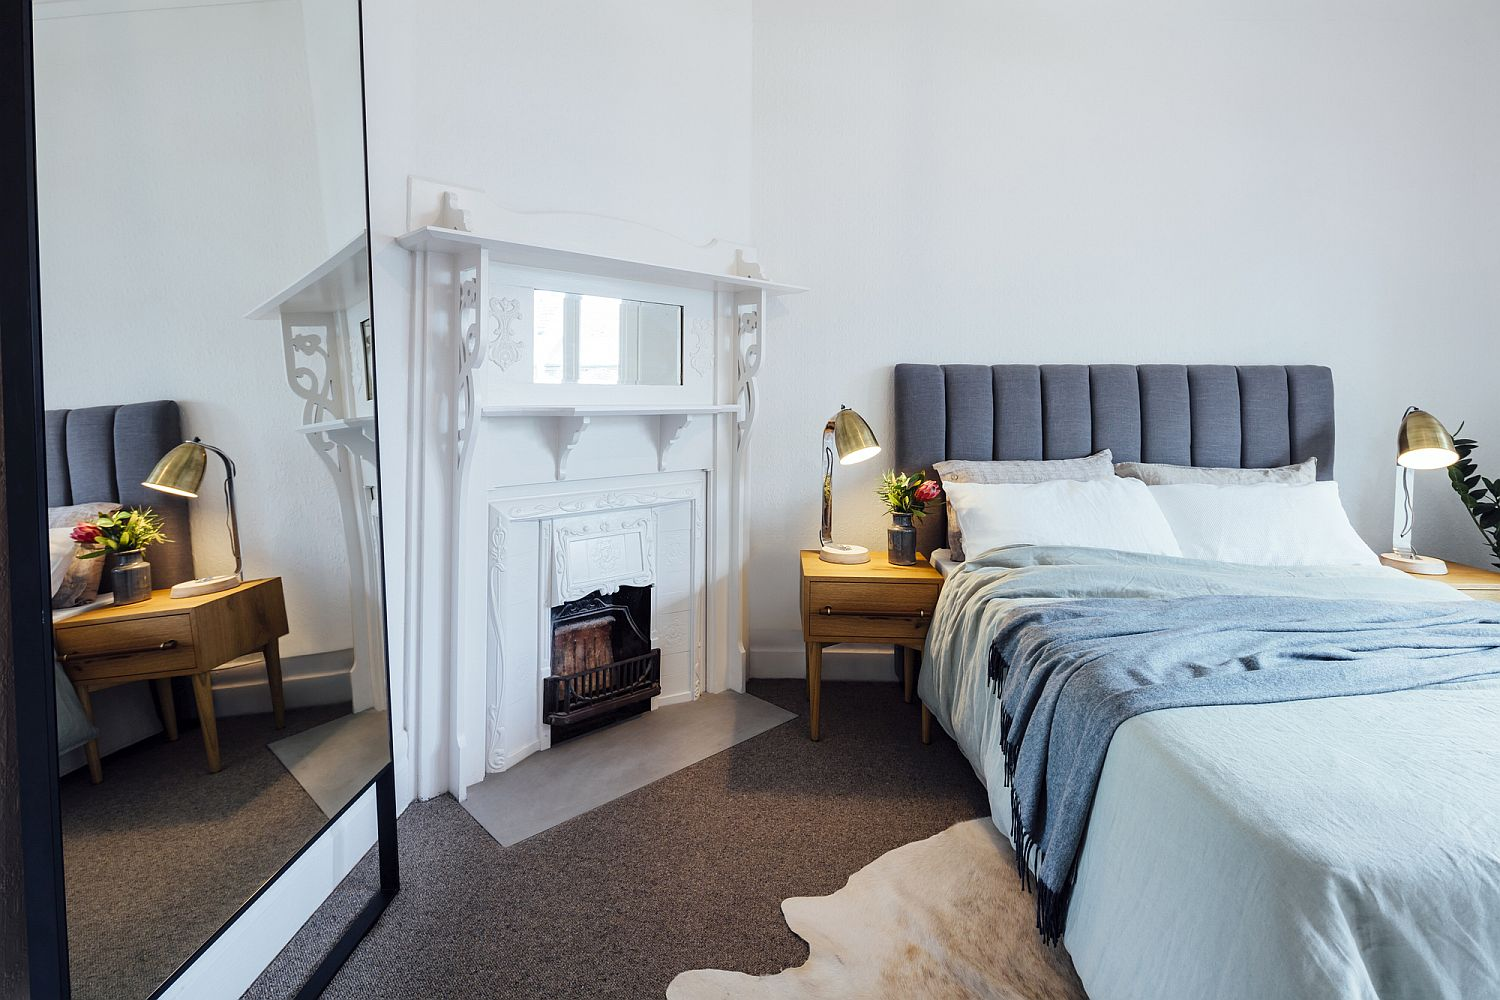 Large-mirror-in-the-bedroom-gives-the-room-a-more-spacious-appeal